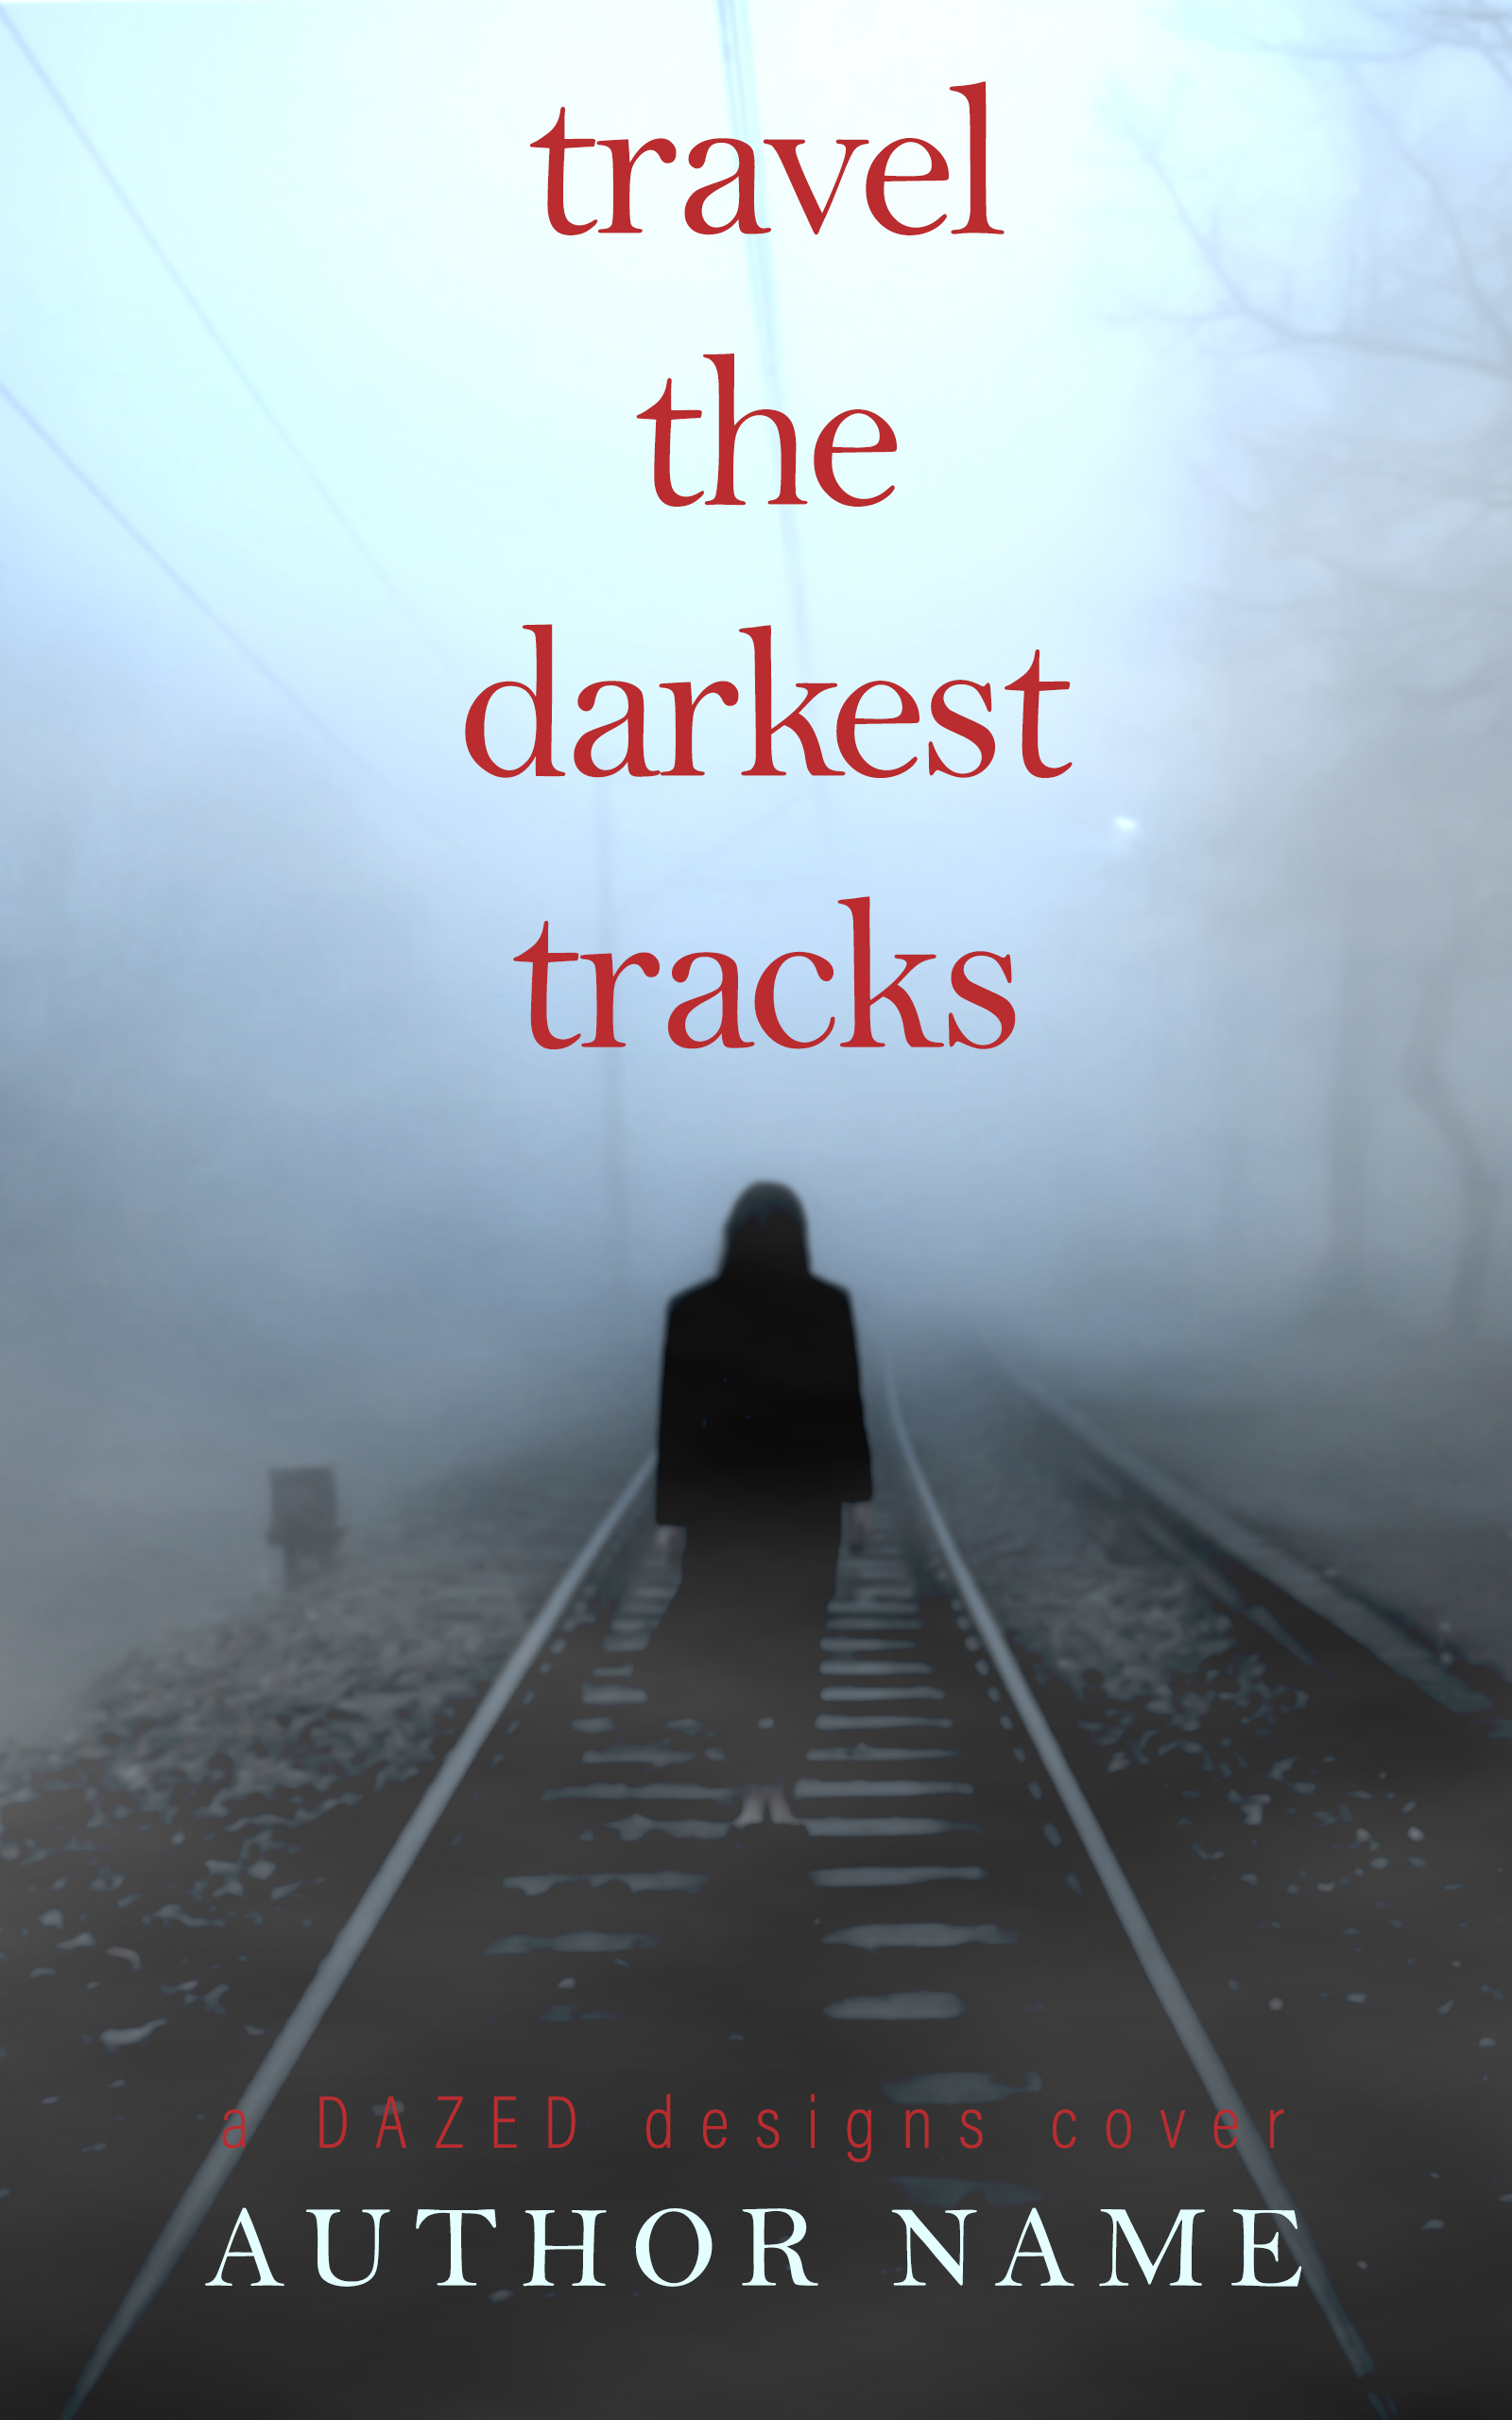 Travel the darkest tracks.jpg